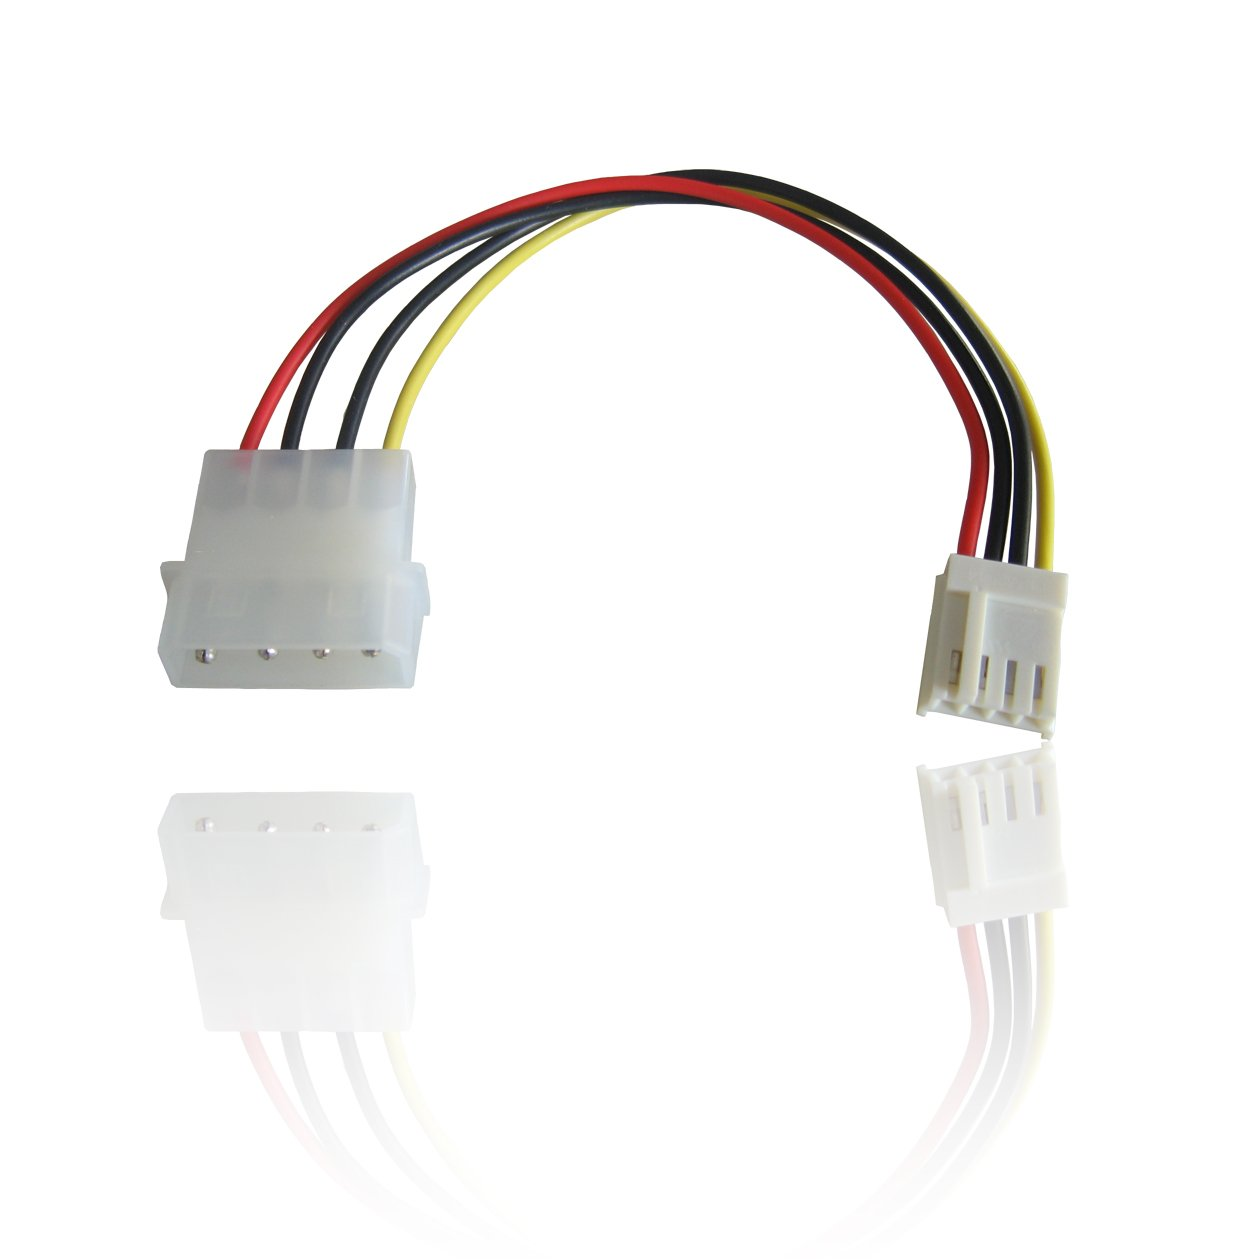 51TAqqrhApL._SL1260_ connect pc fan using floppy to molex power cable components